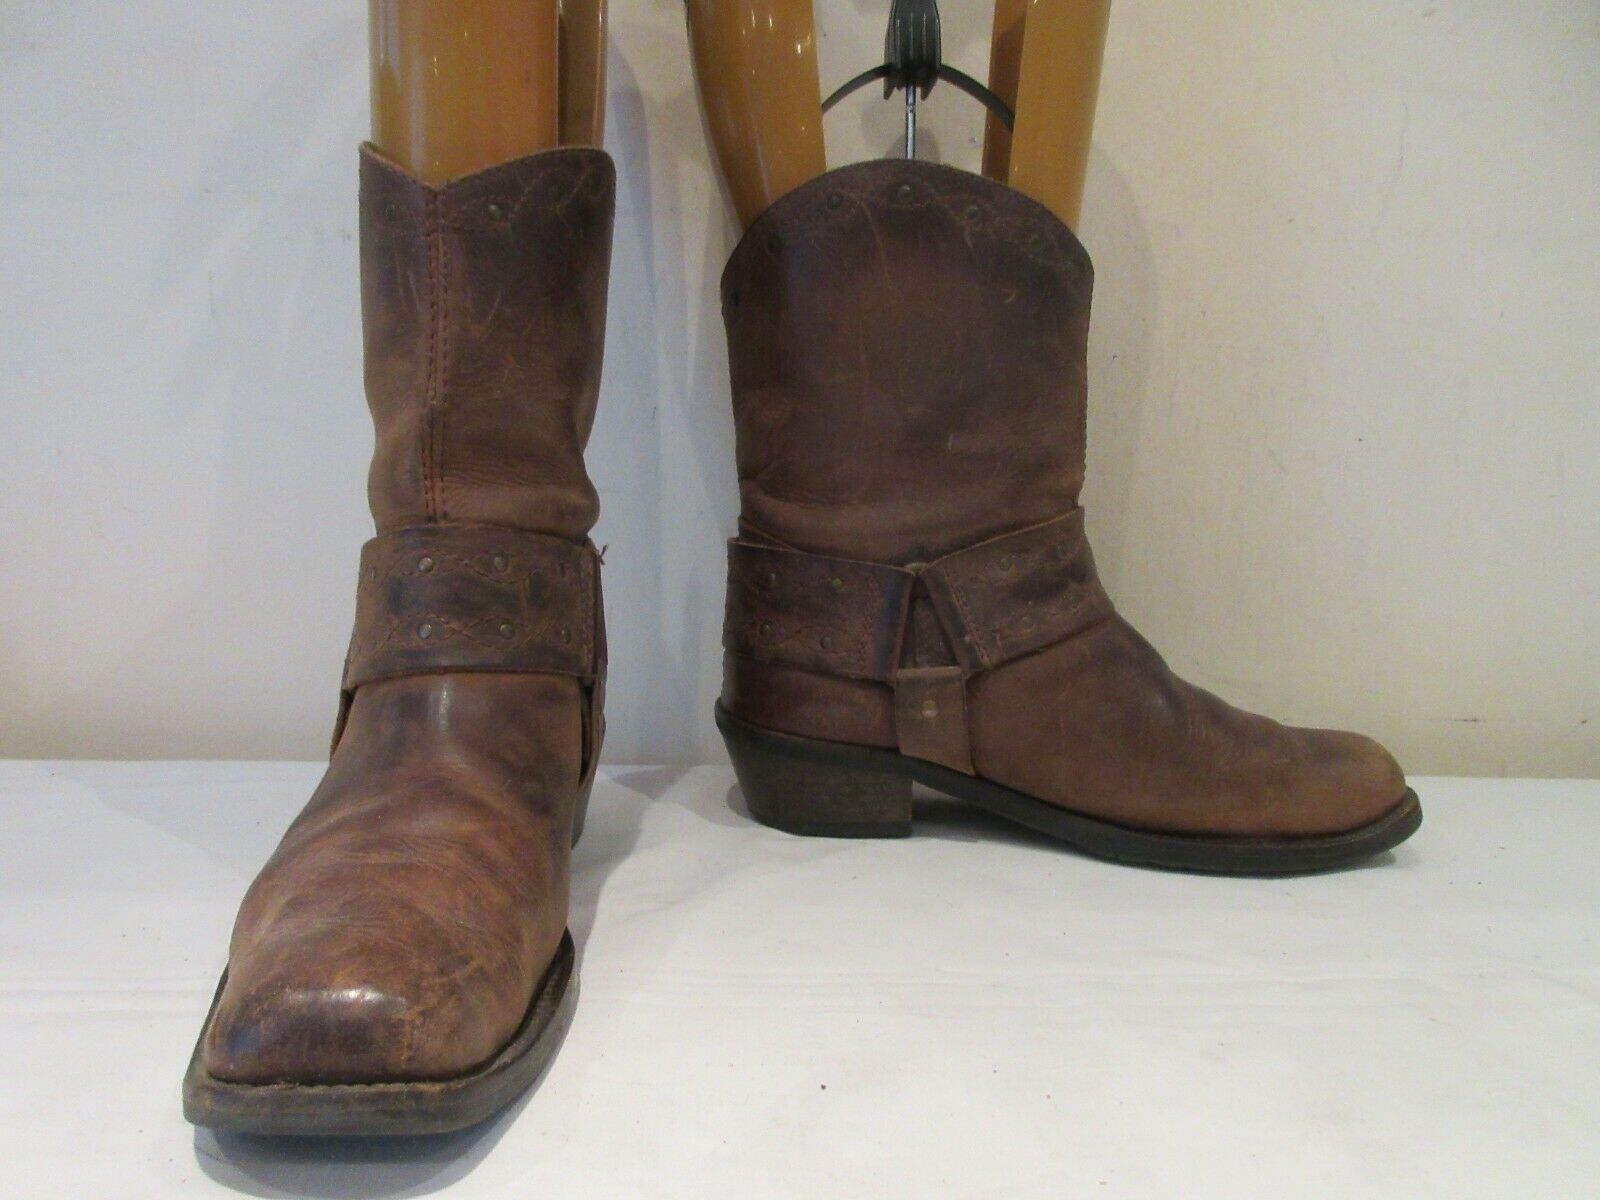 VINTAGE DOLCIS BROWN LEATHER WESTERN PULL ON BOOTS UK 7 (3658)